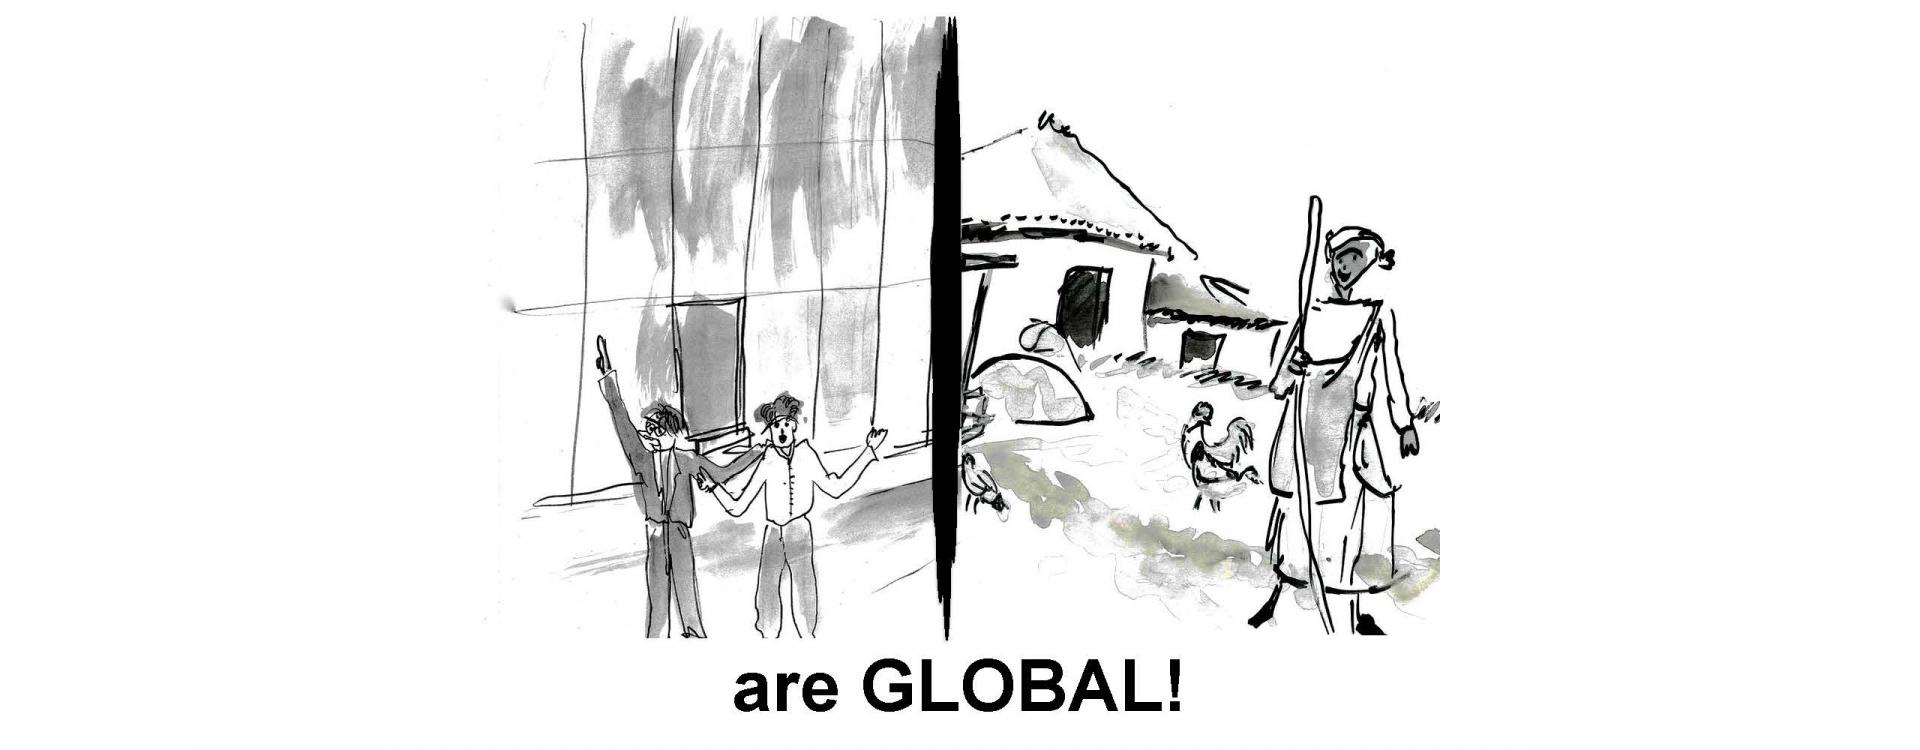 ...are GLOBAL!